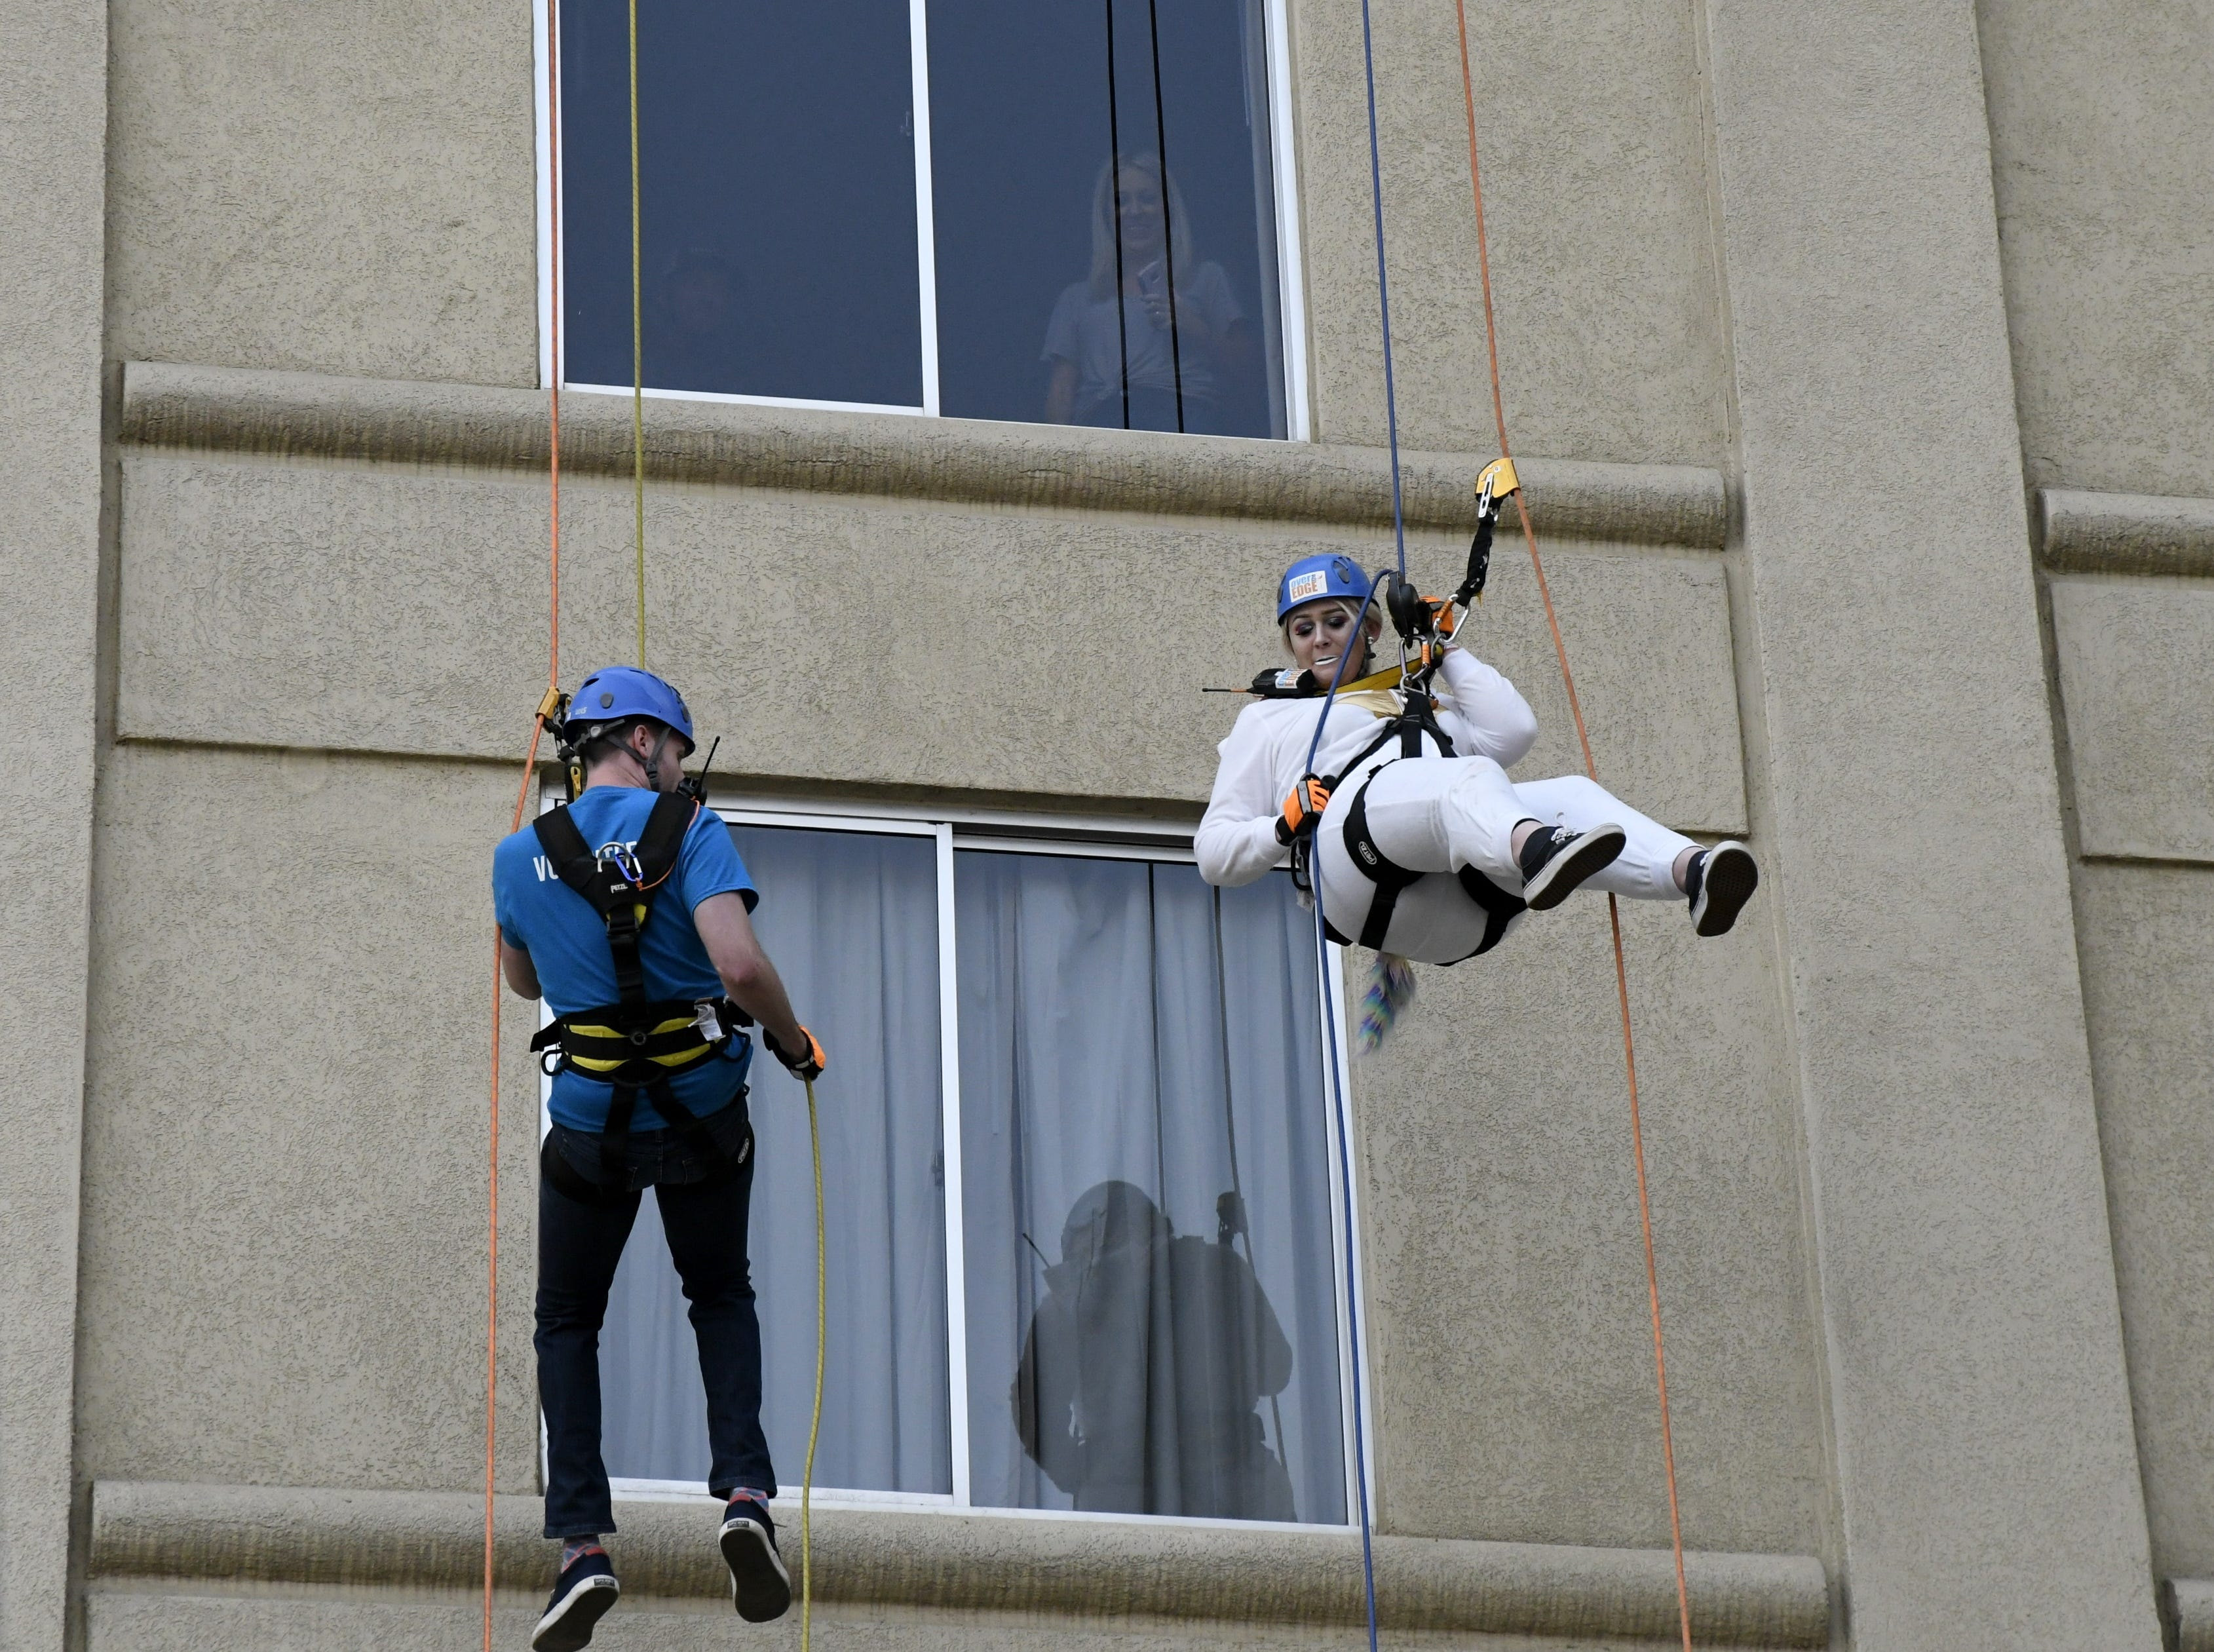 Bradley Rutledge (left) and Kayie McDonald rappel down the side of the Visalia Marriott at the Convention Center in downtown Visalia for the first Over the Edge fundraising event for The Source LGBT+ Center on Saturday, November 10, 2018.